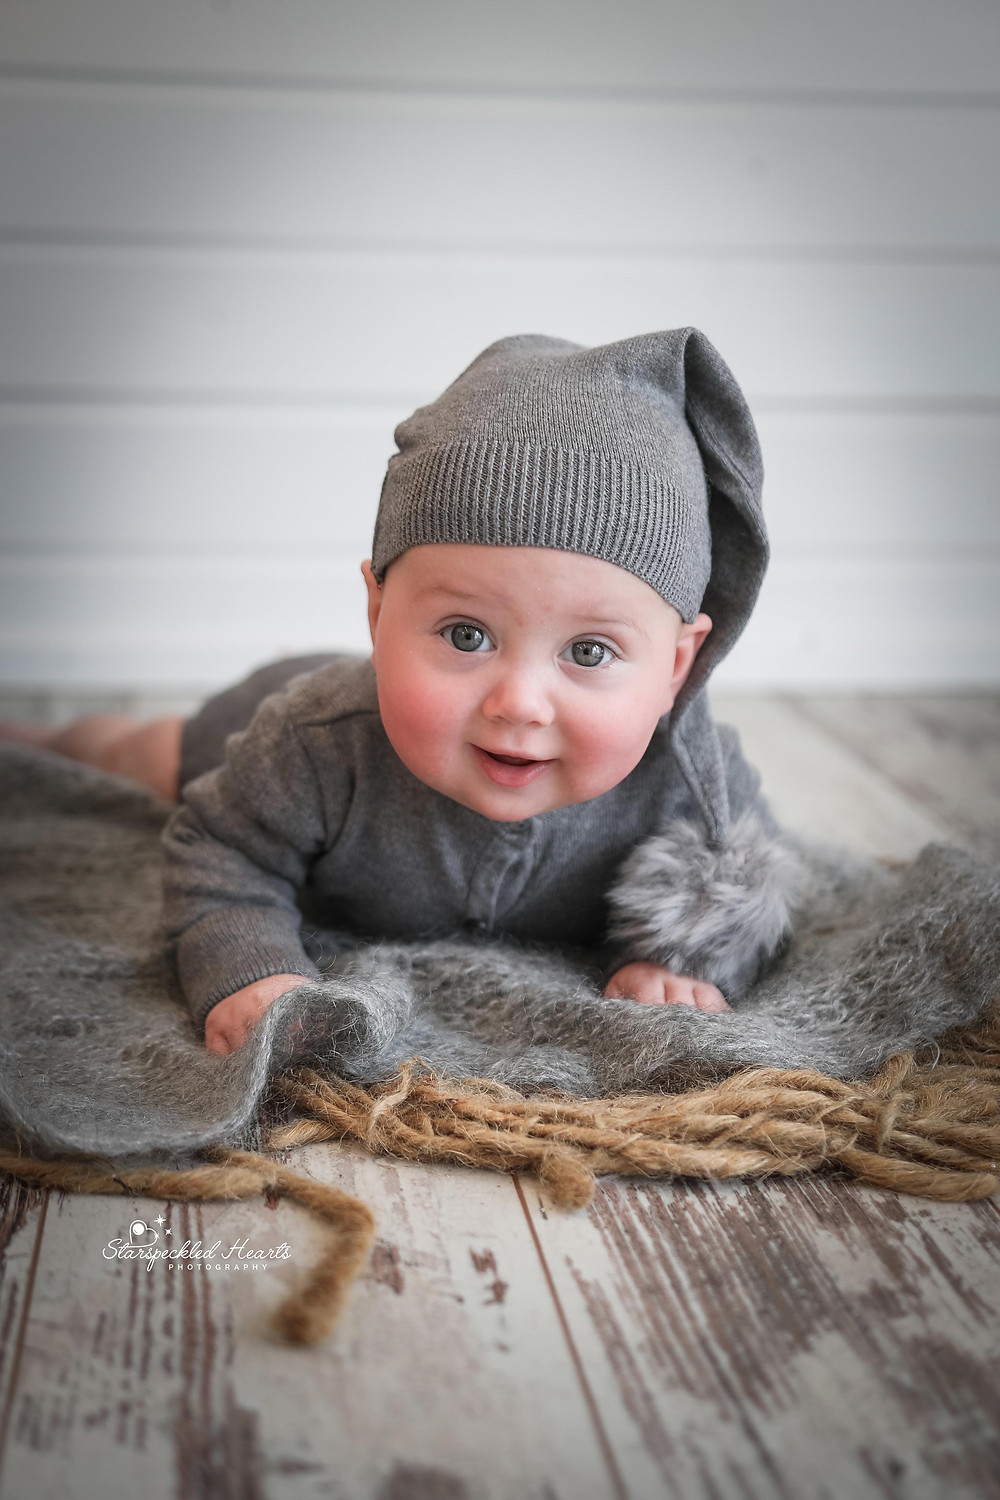 gorgeous smiling baby boy wearing a grey romper suit with a matching hat